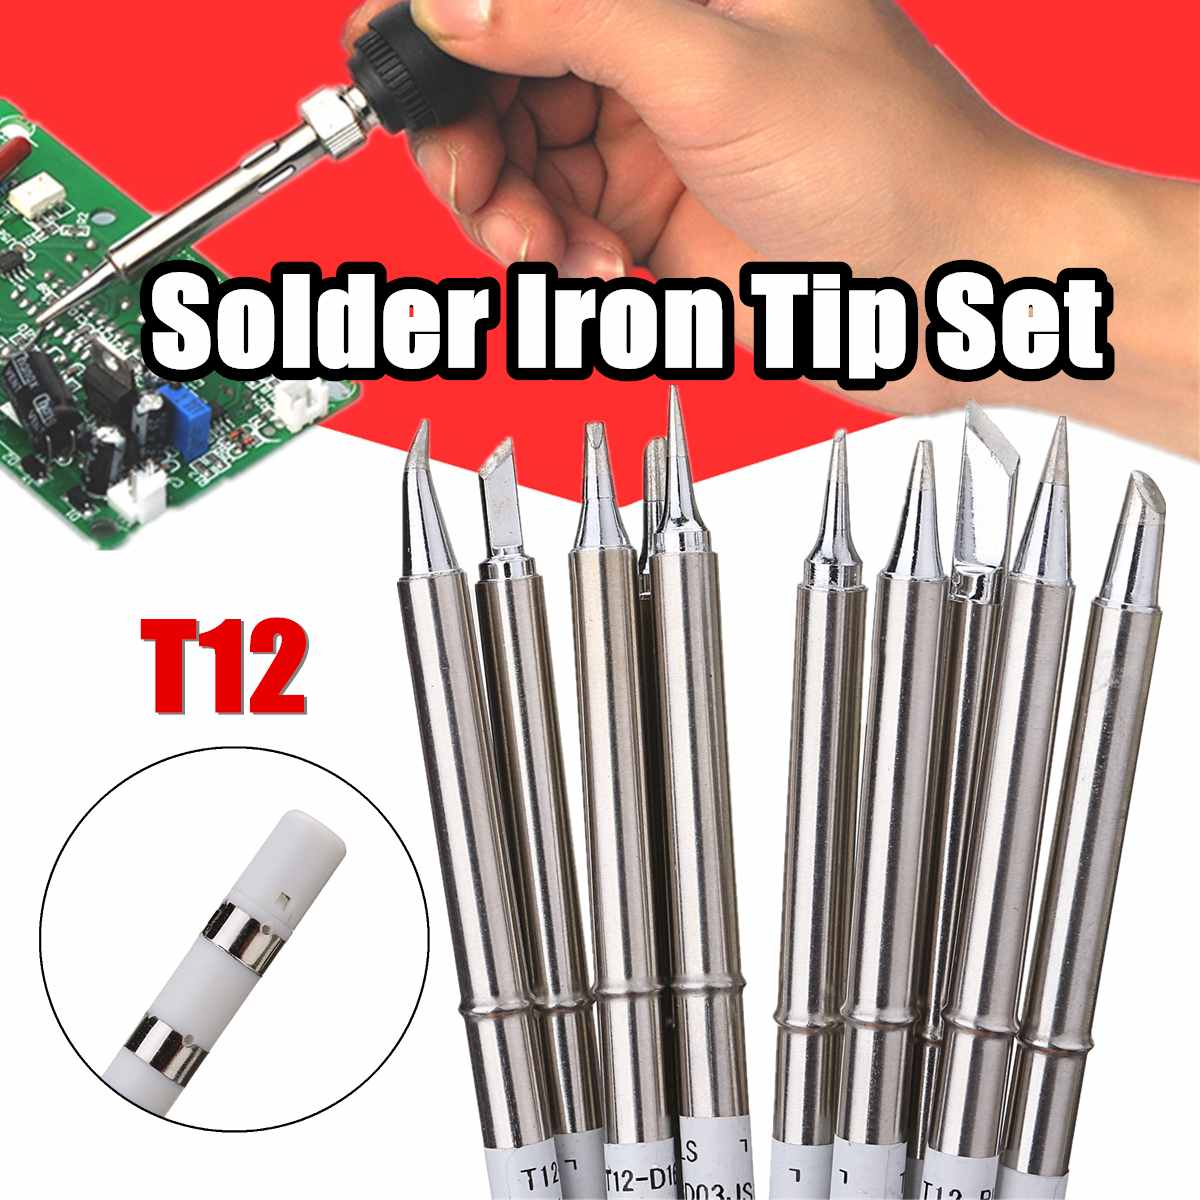 Drillpro 10pcs T12 Soldering Iron Tips Set Soldering Alloy Iron Tips Lead-free Solder Tips Welding Head Soldering Tools 155mm